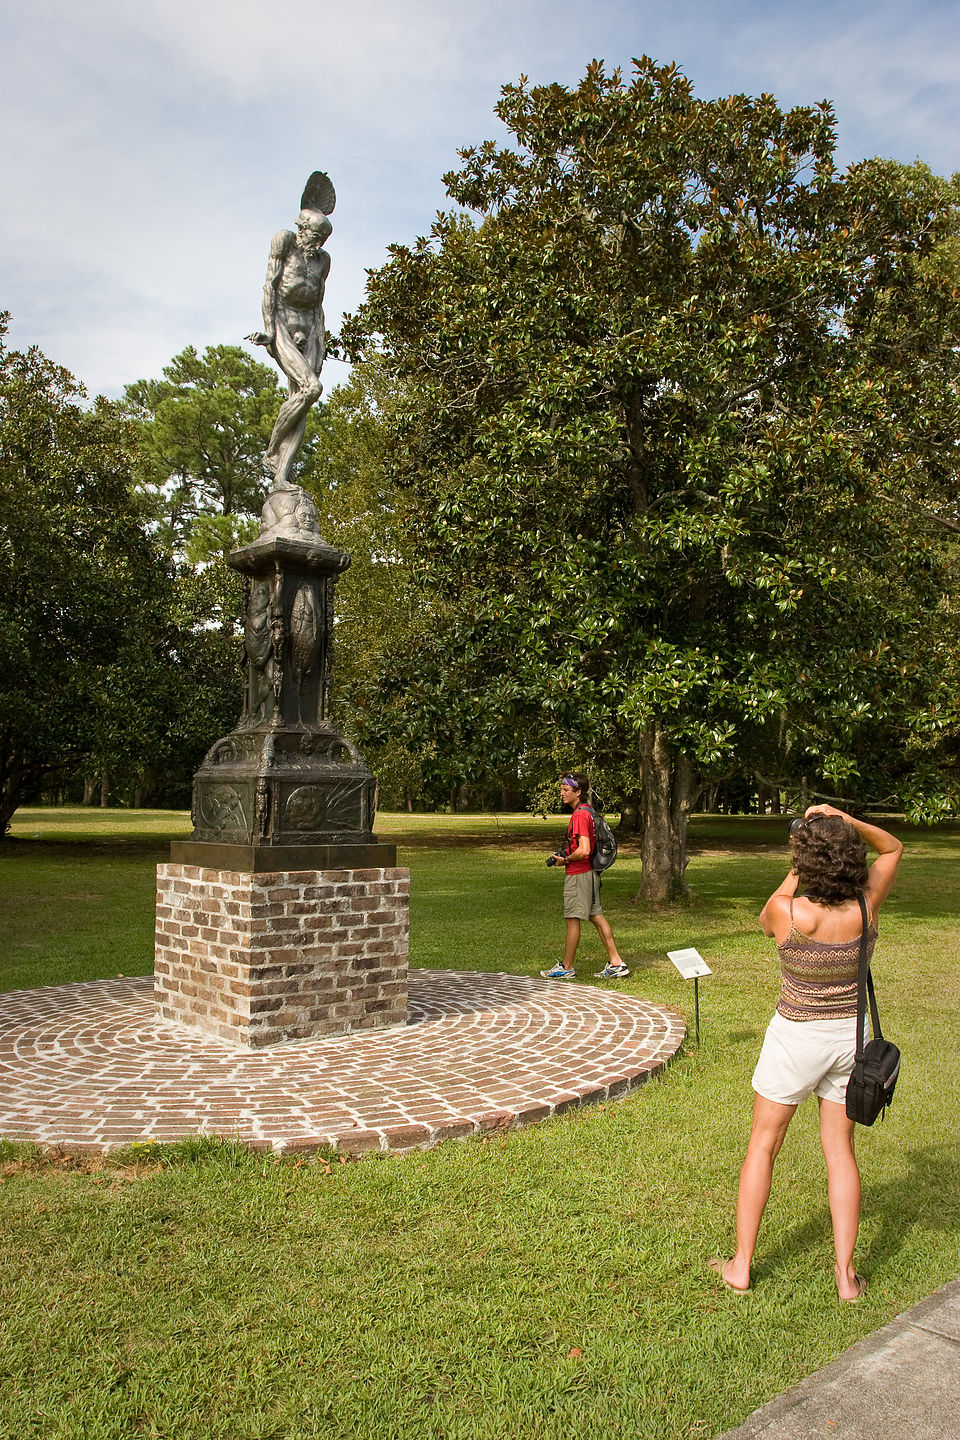 Lolo photographing statue